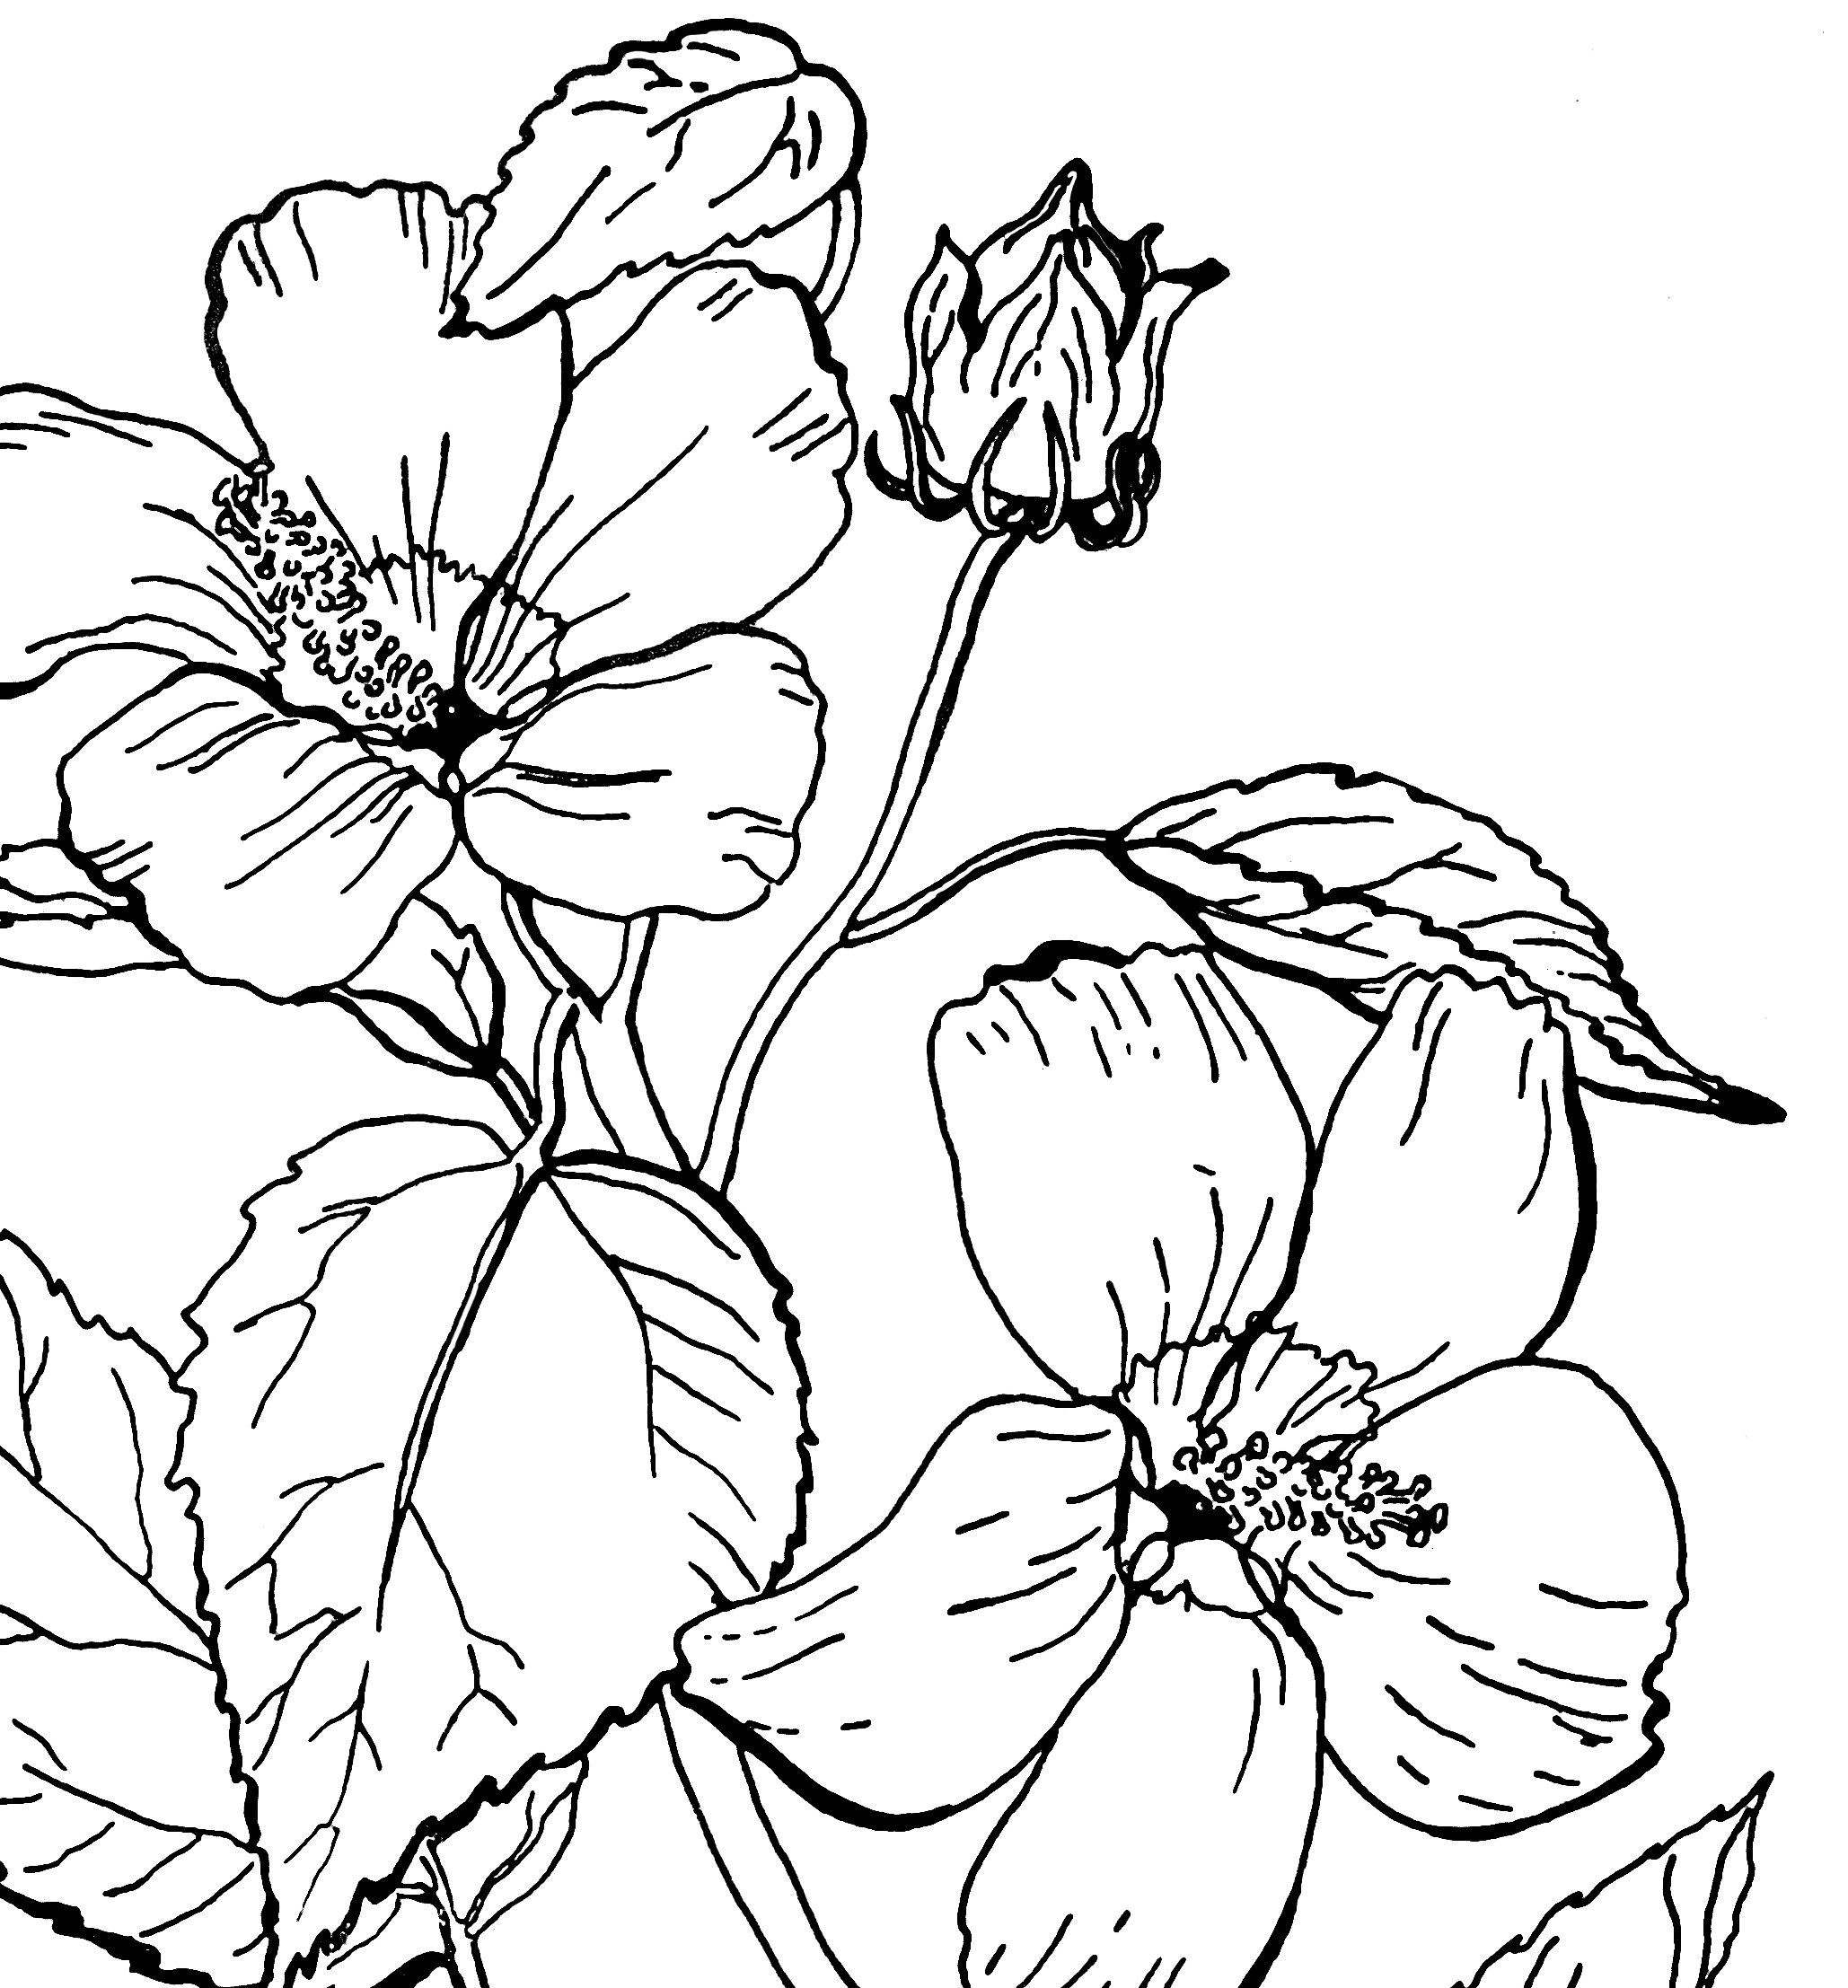 rose coloring page free printable roses coloring pages for kids page rose coloring